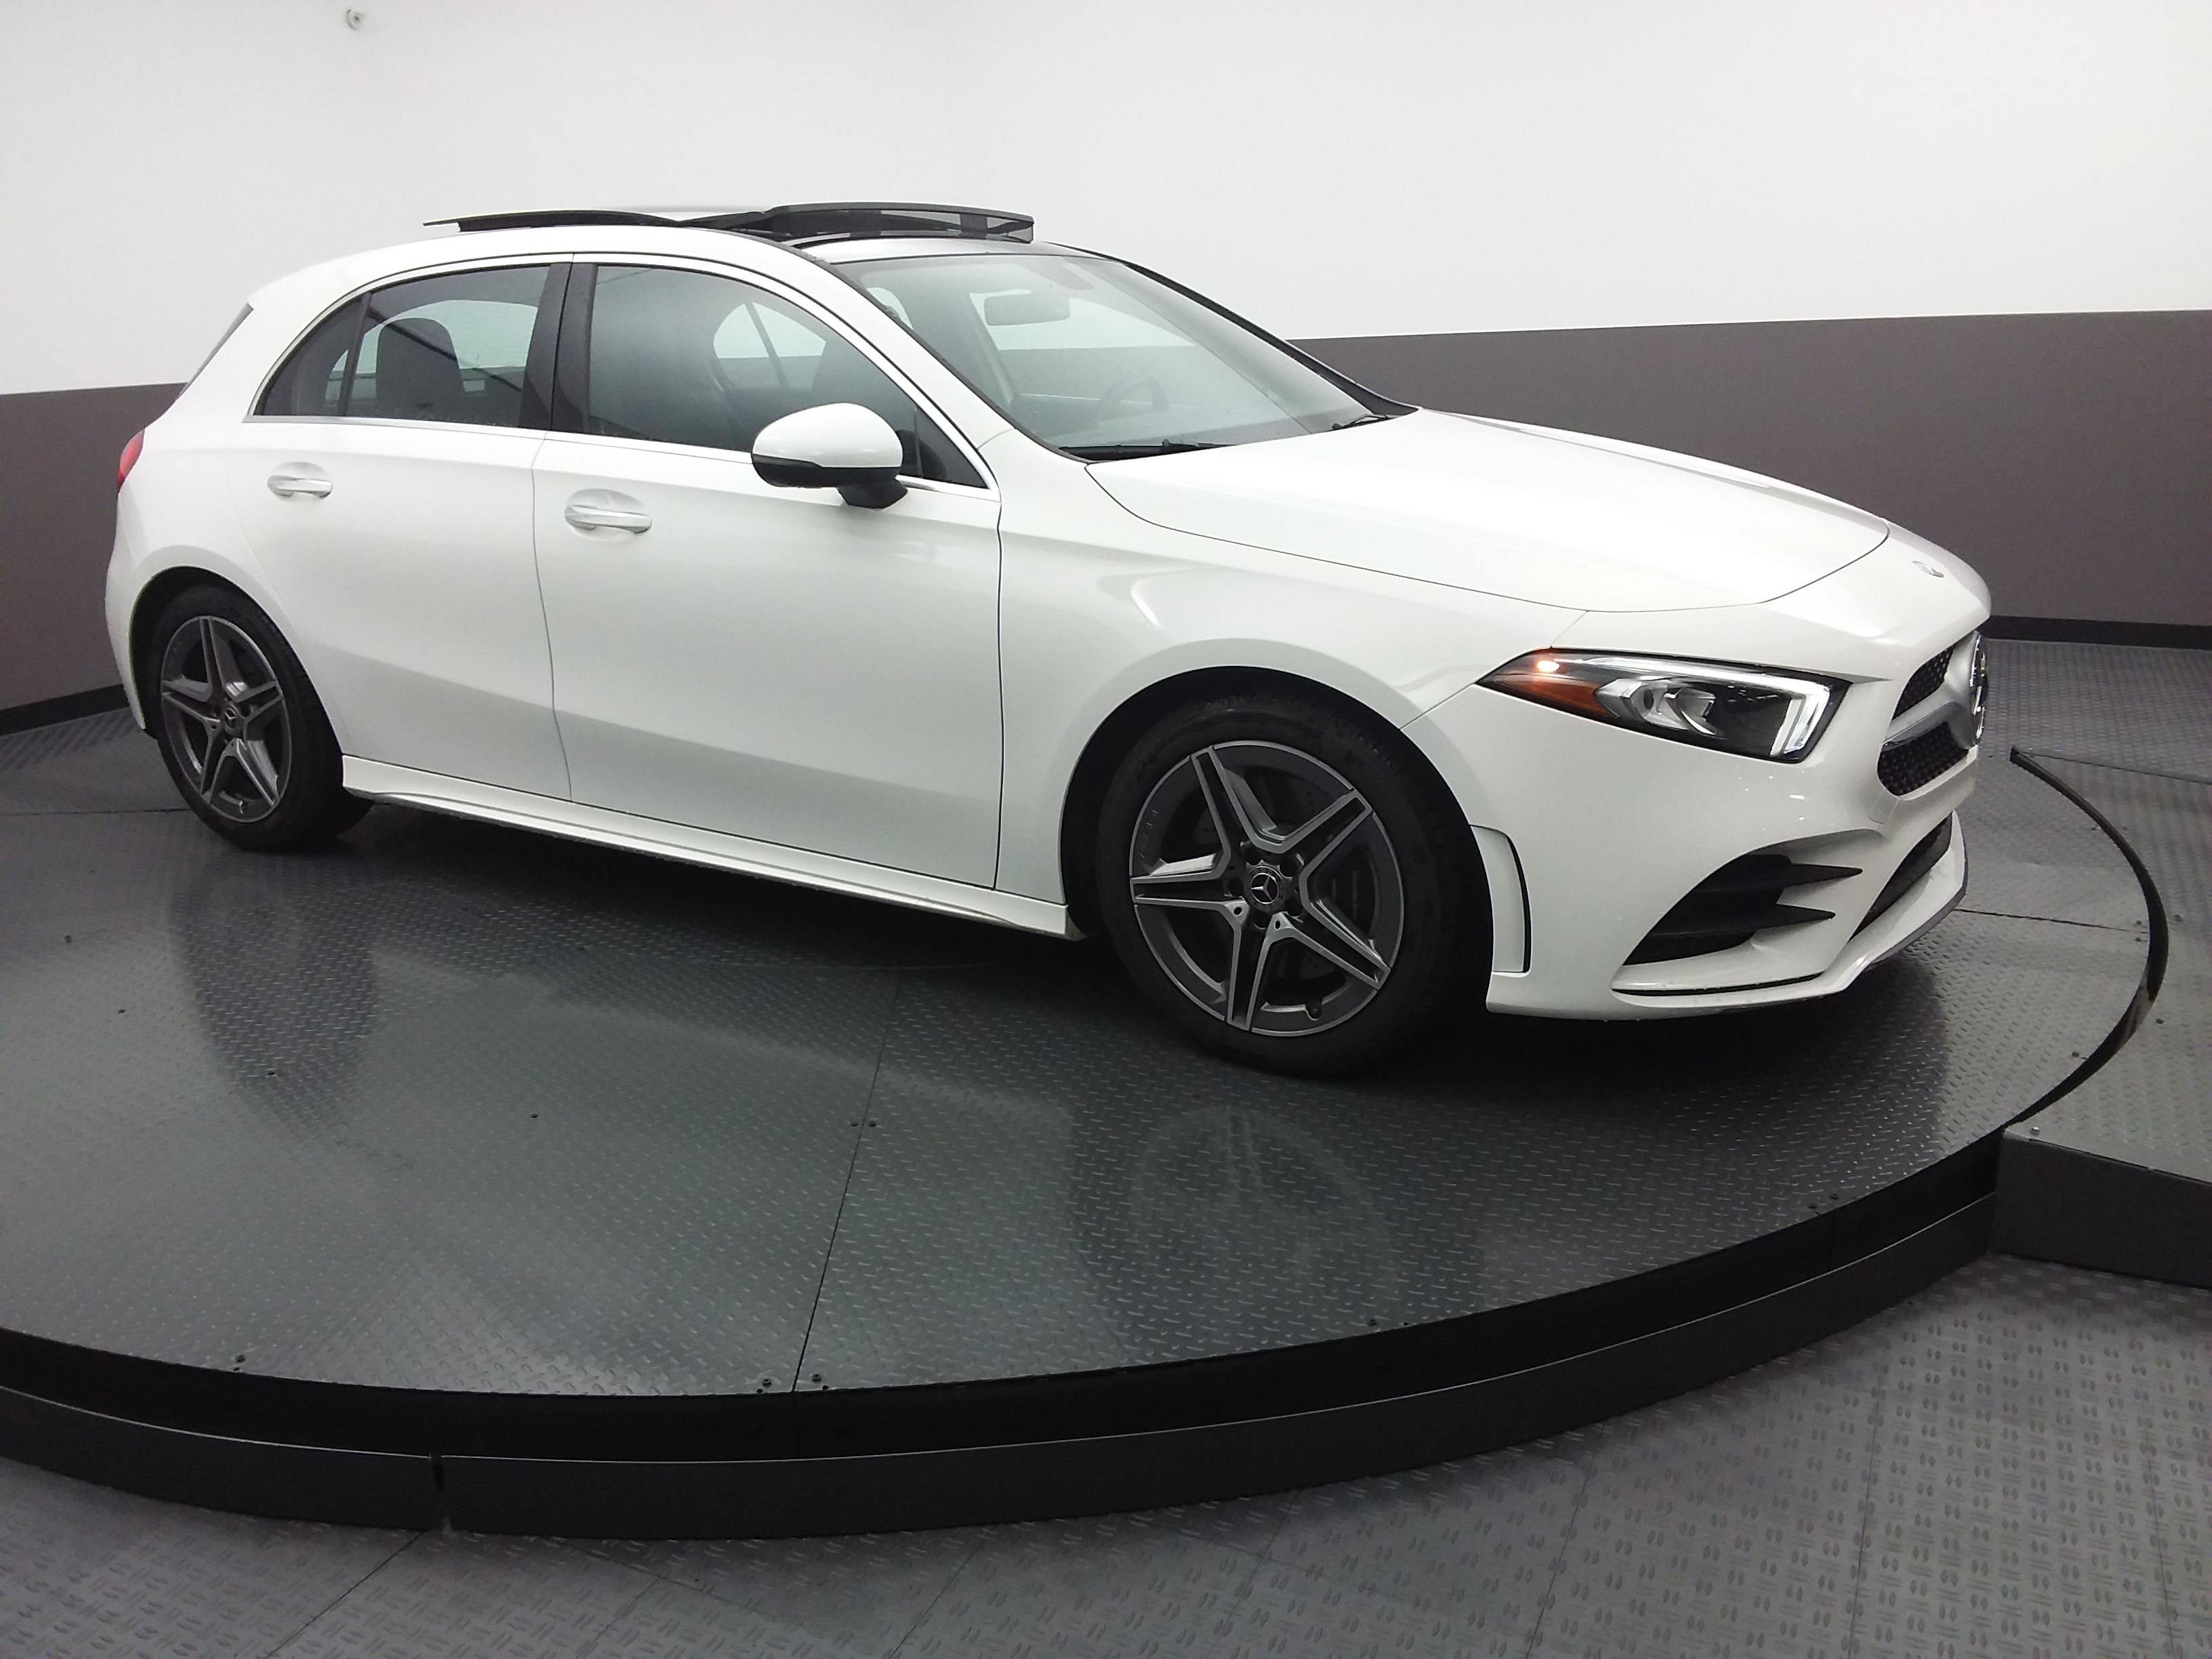 Pre-Owned 2019 Mercedes-Benz A-Class A250 4MATIC 5DR HATCH